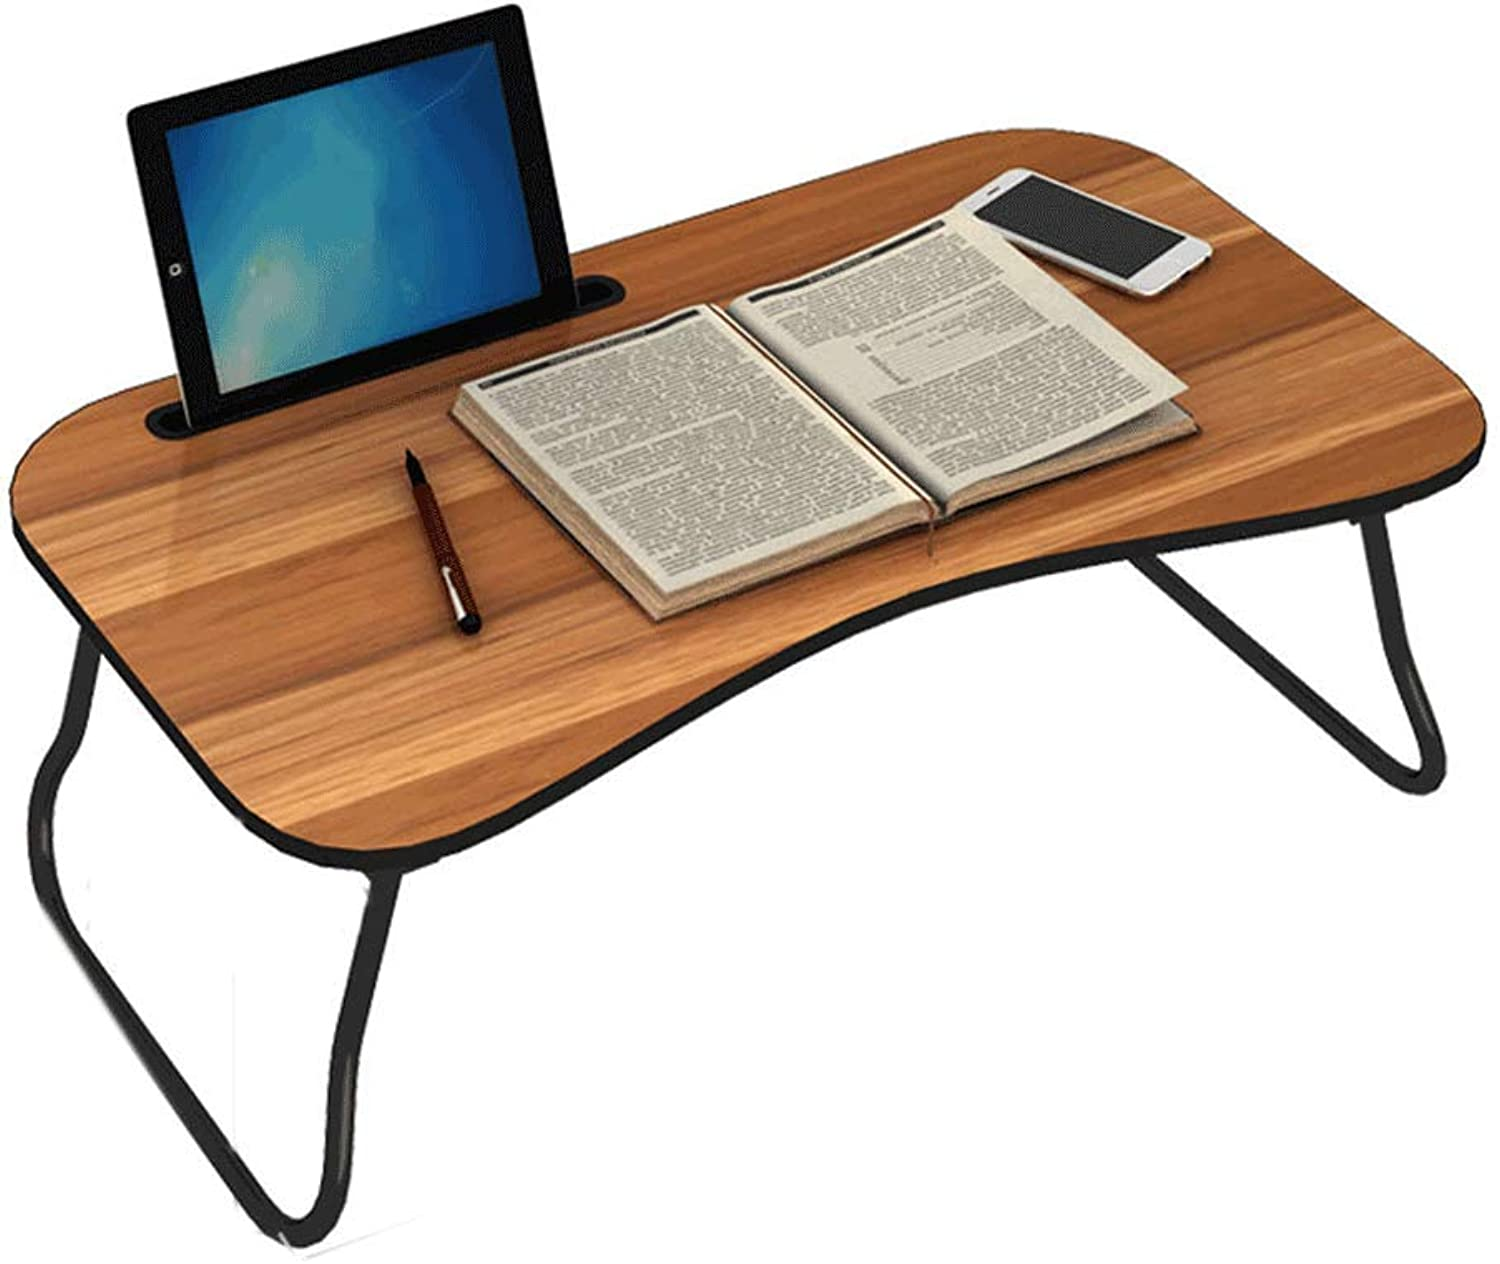 TY BEI Folding Table - Lazy Bed Desk Laptop Table Student Learning Small Table Foldable Simple Household 70x40x24.5cm